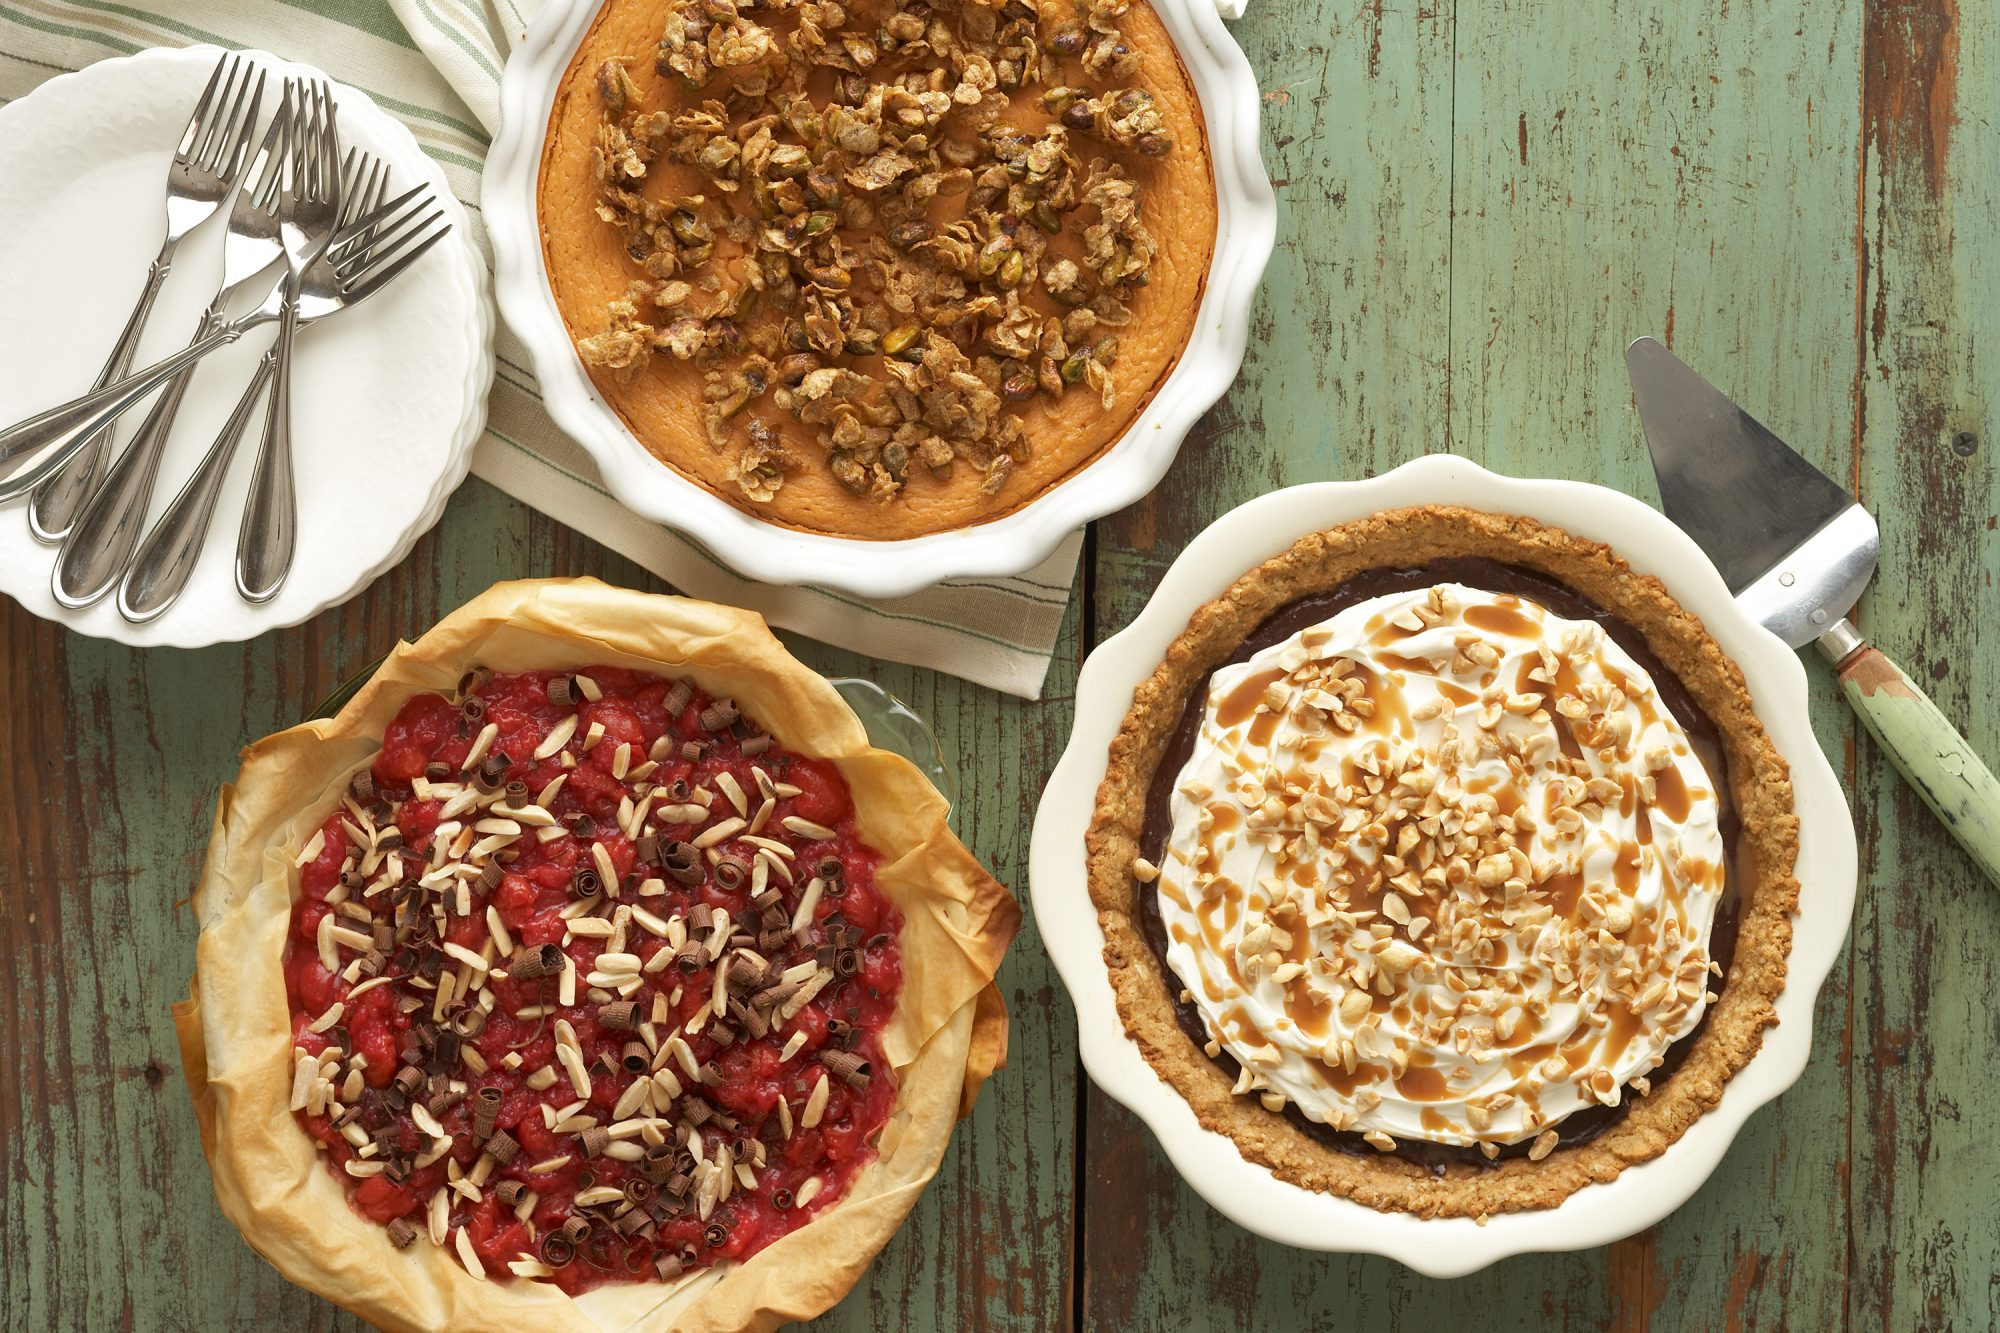 three different pies on wooden table with servingware